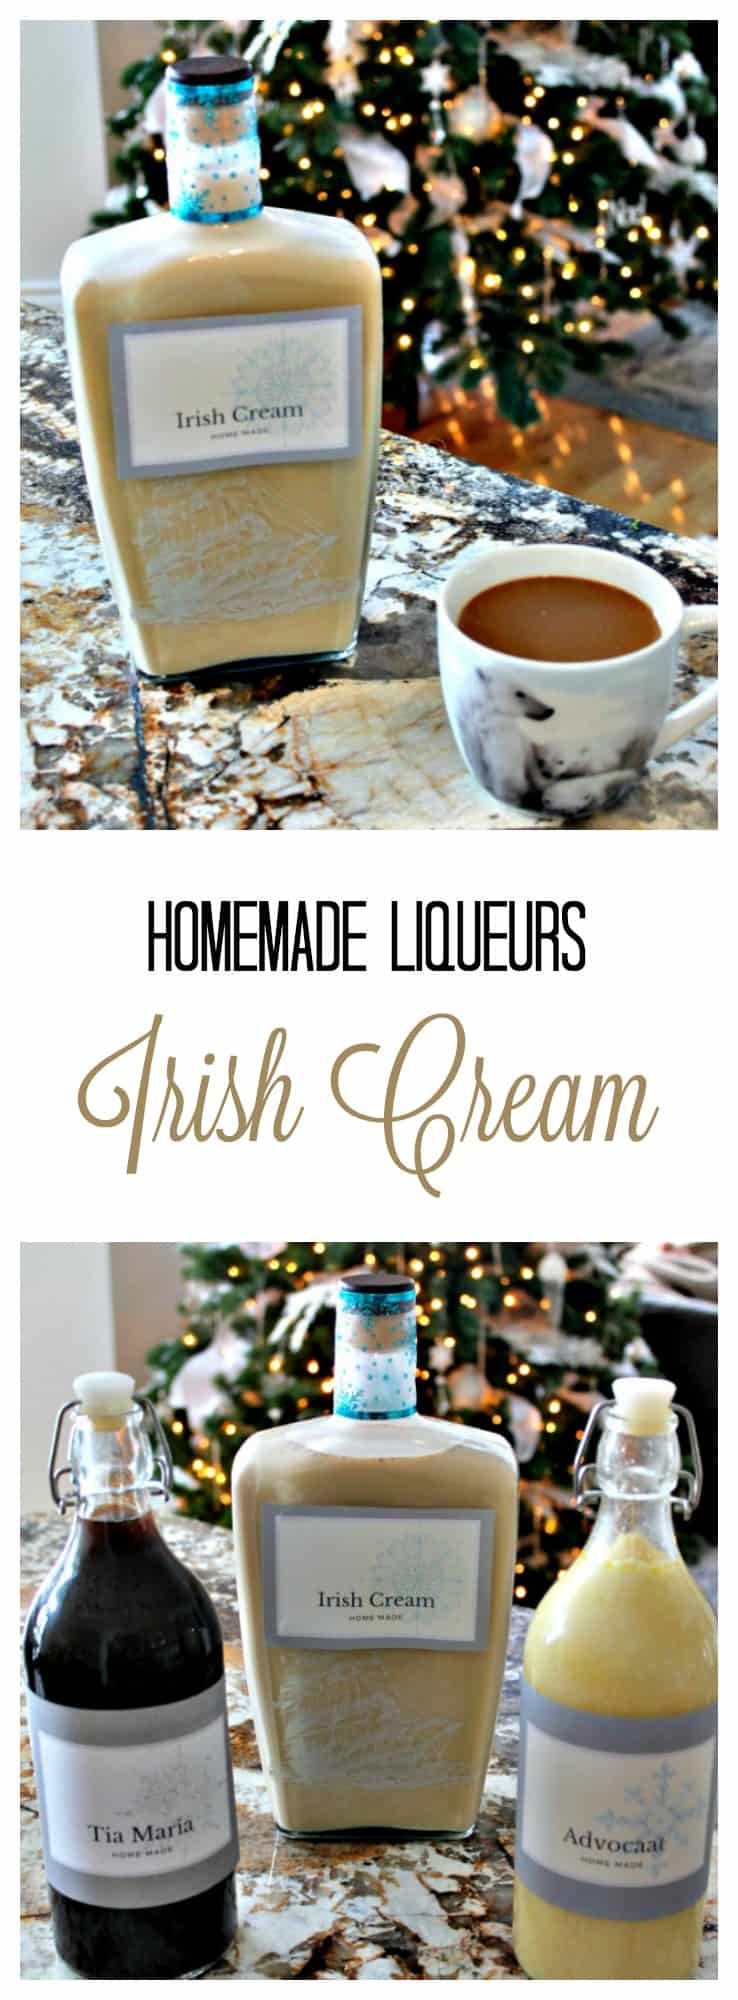 Homemade Irish Cream,Irish Cream Liqueur, Baileys Irish Cream Recipe, Irish Cream Recipe,, bailey's recipes, Irish cream recipes